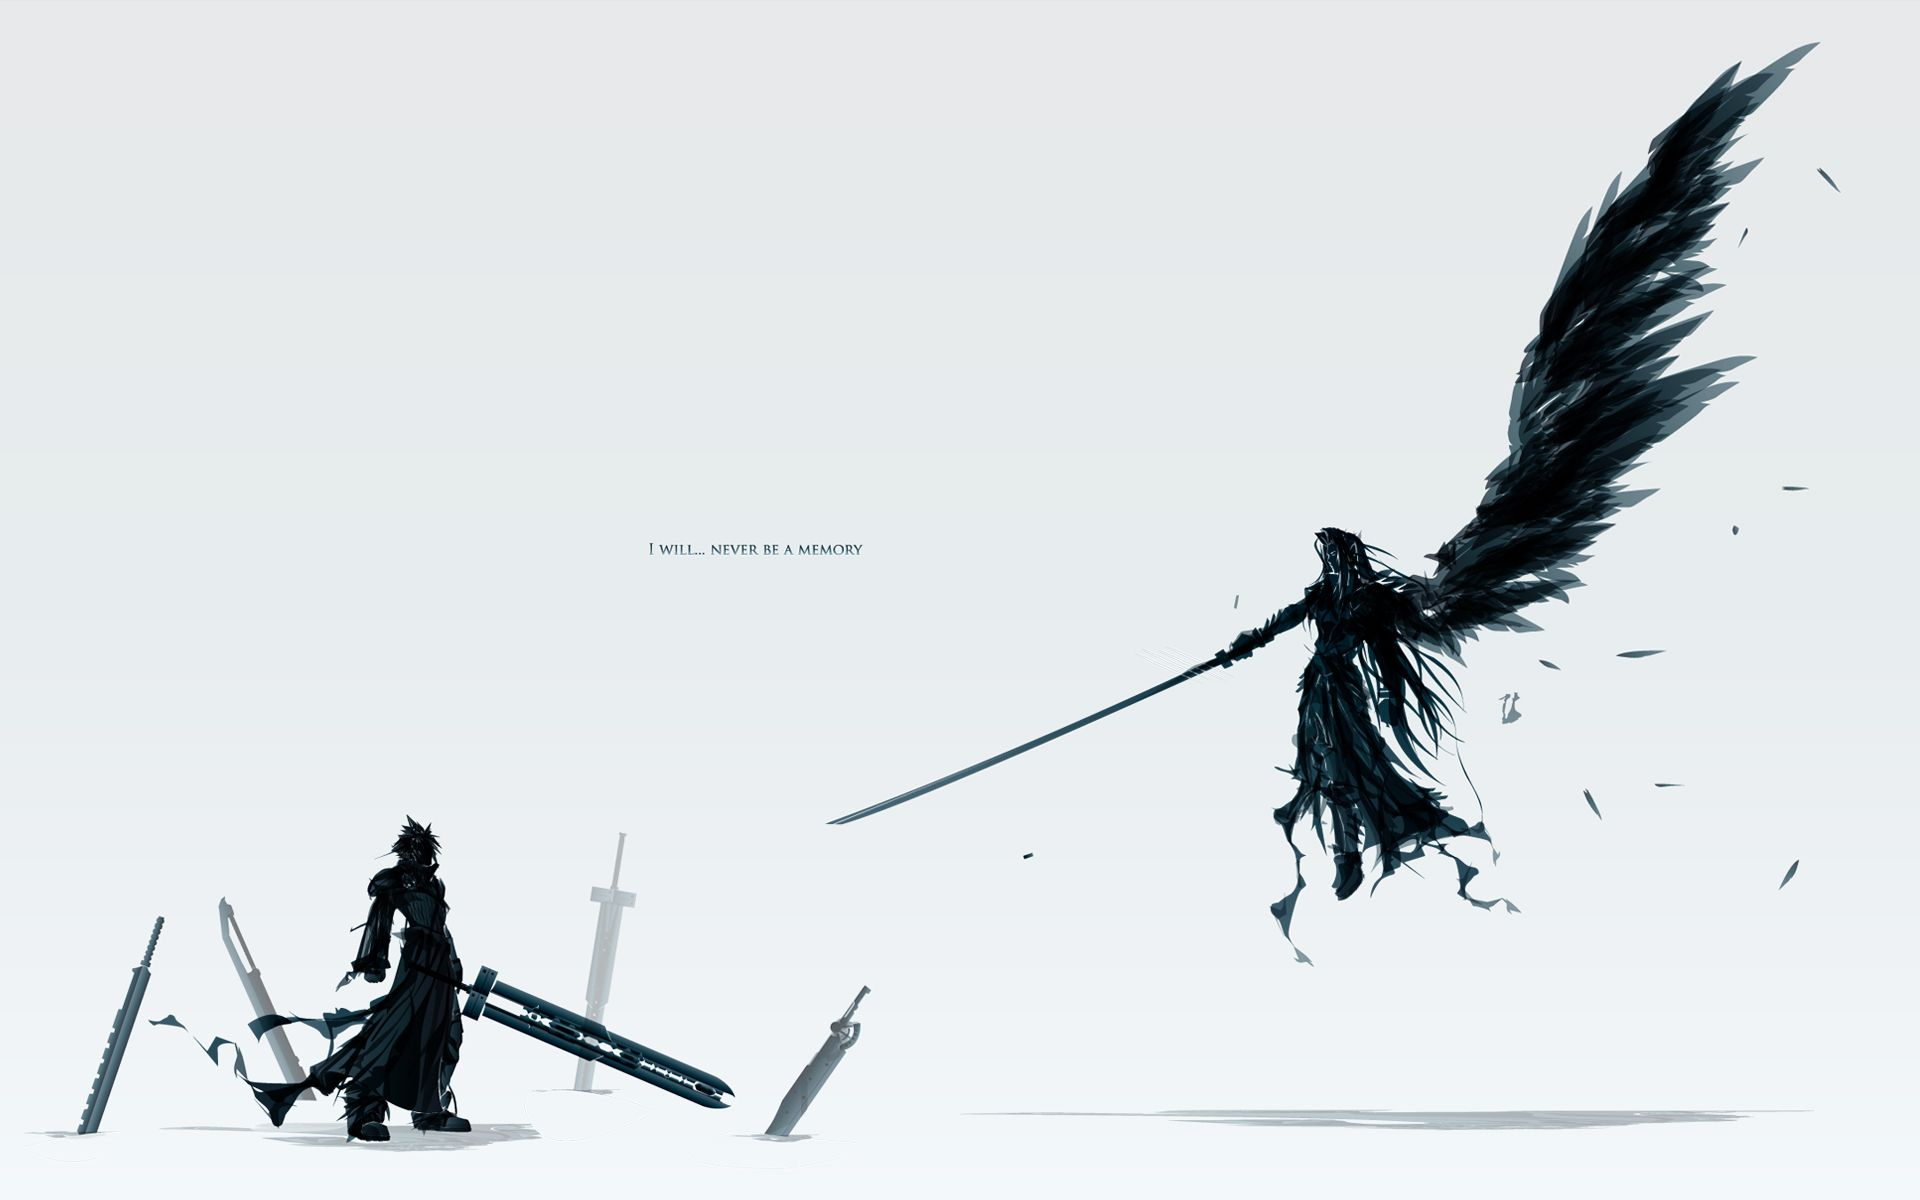 Final Fantasy Vii I Will Never Be A Memory ファイナル